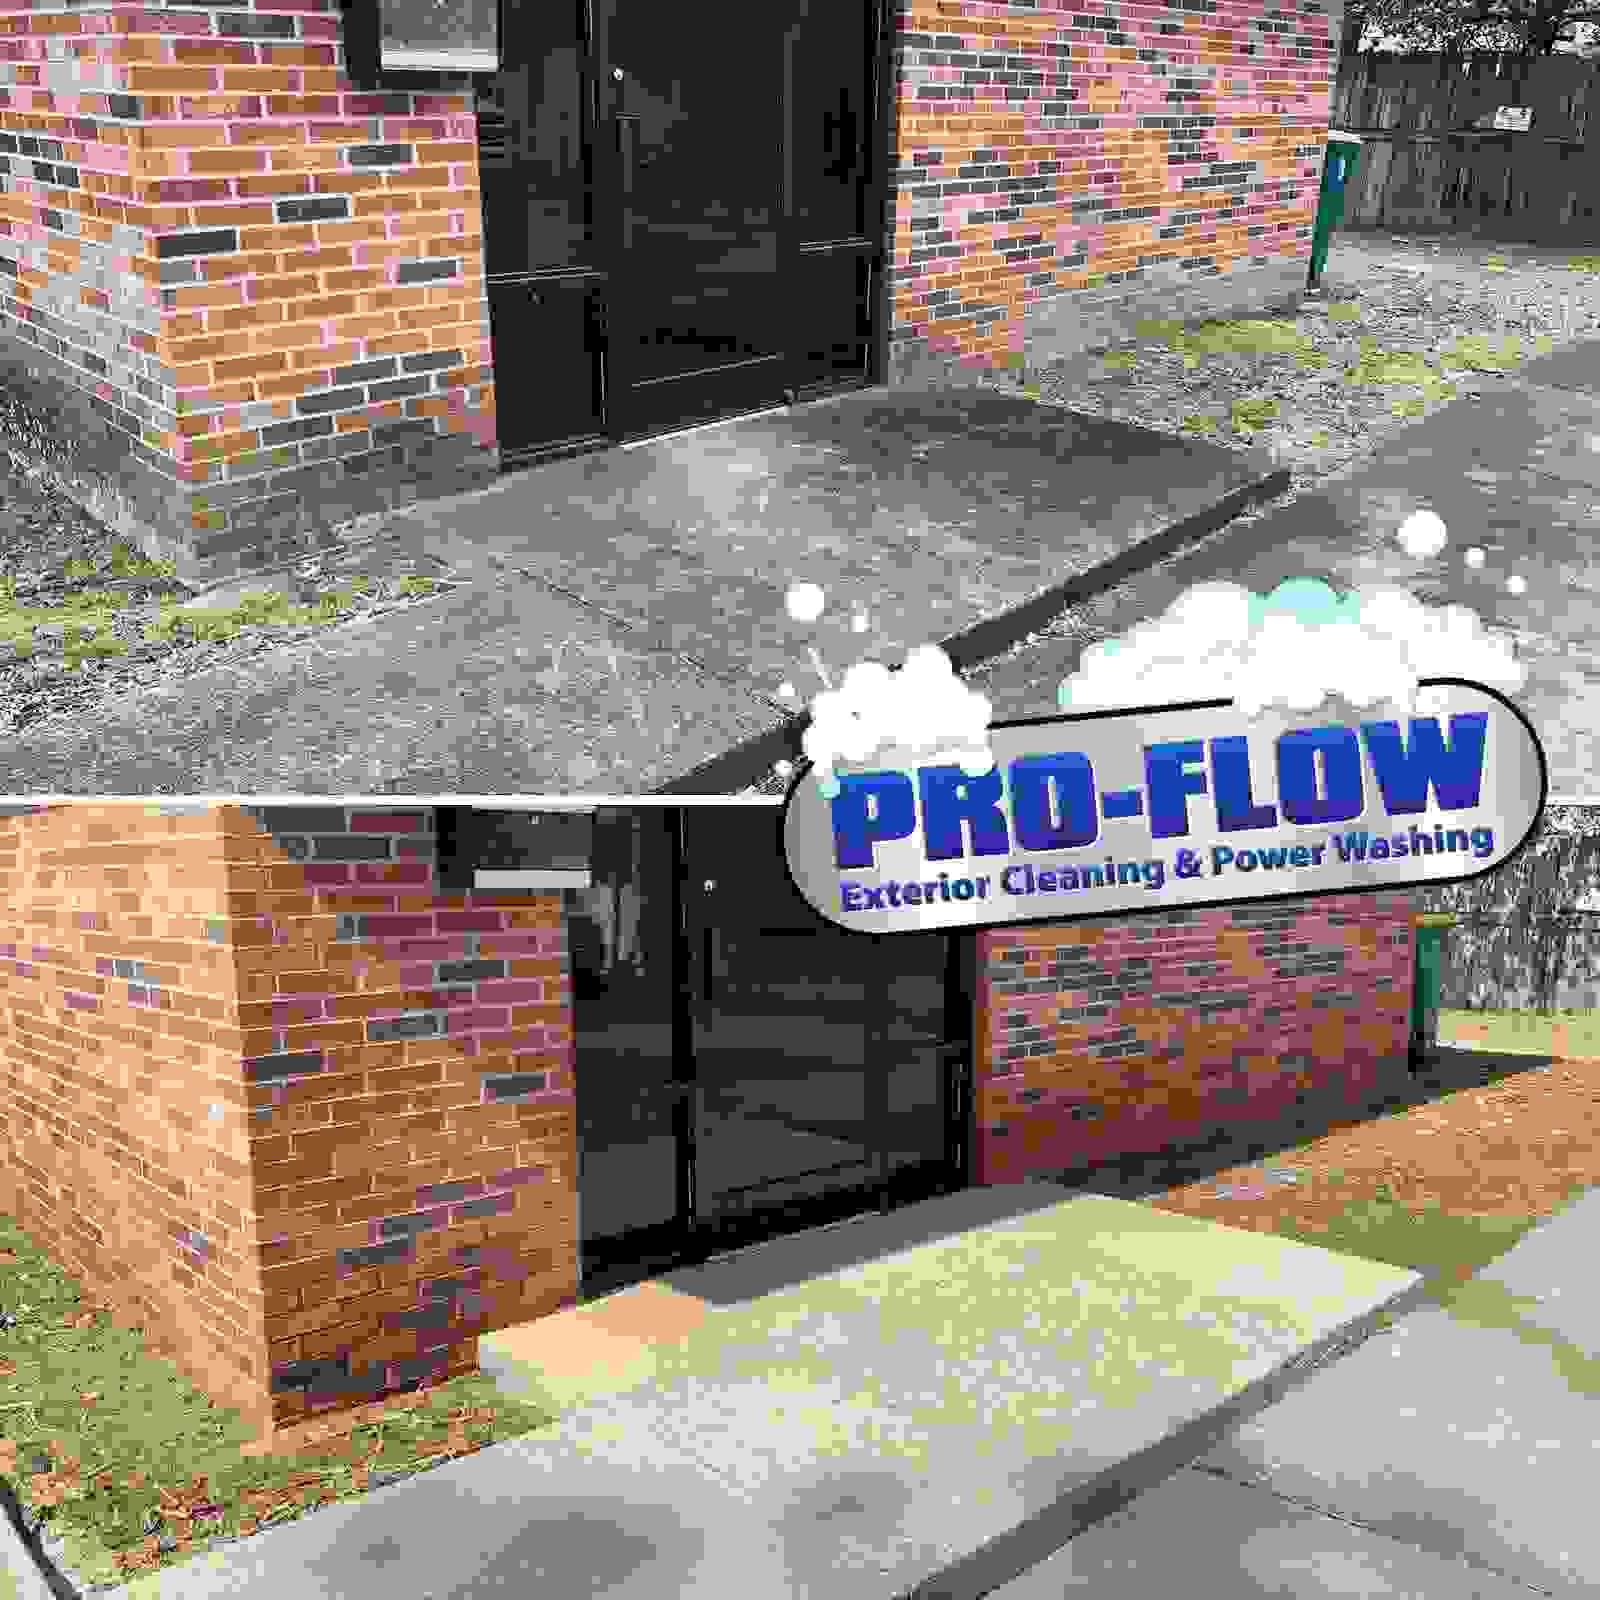 Commercial Concrete Cleaning - Pro Flow Exterior Cleaning